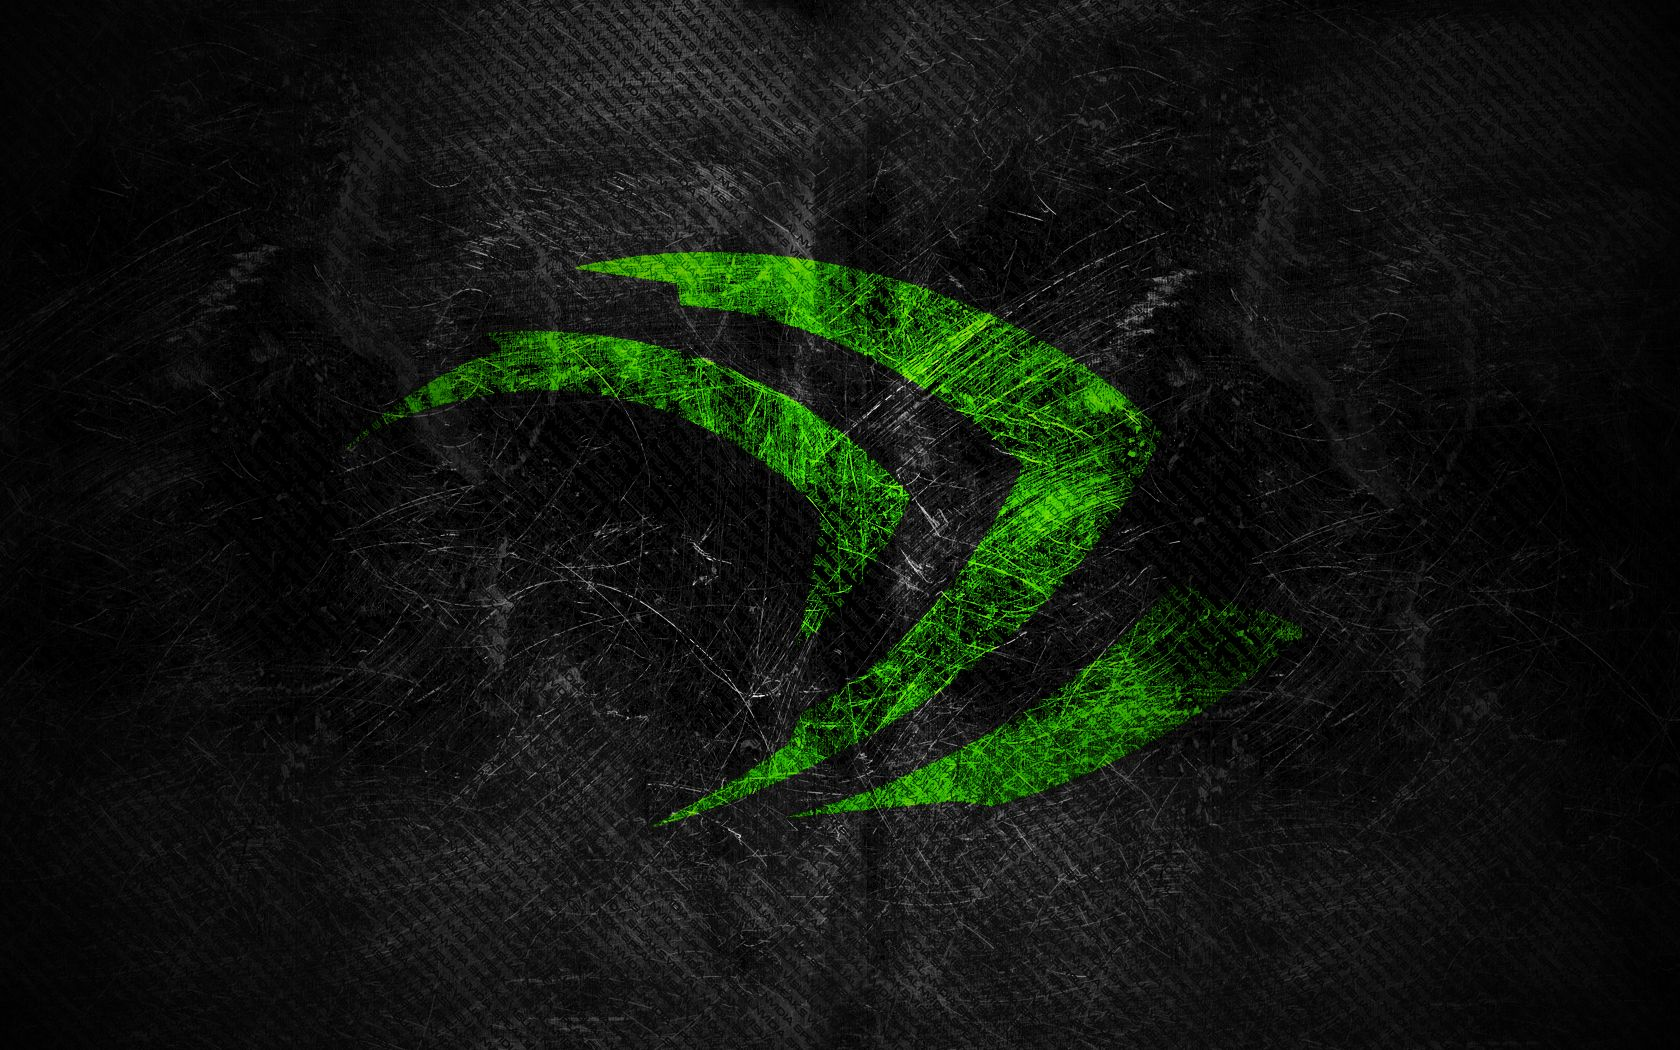 The Latest Nvidia Wallpapers For Your Desktop Best Free Nvidia Wallpapers In High Definition Free To Use In Your Computer Windows Or Mac